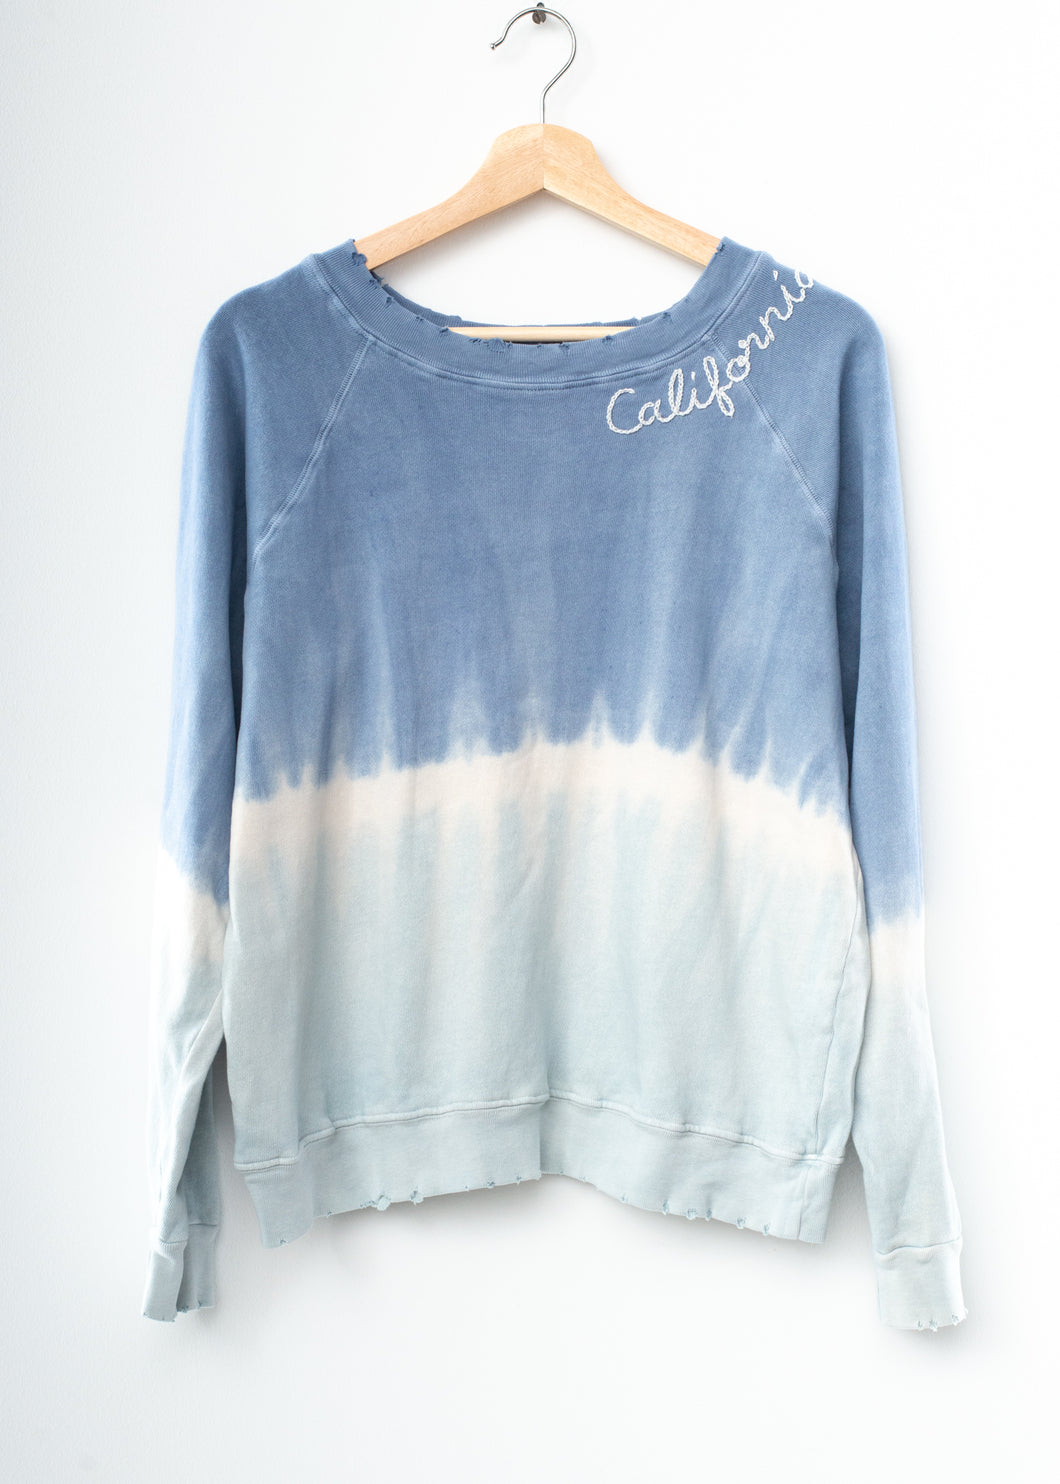 Desert Breeze California Sweatshirt - Sky